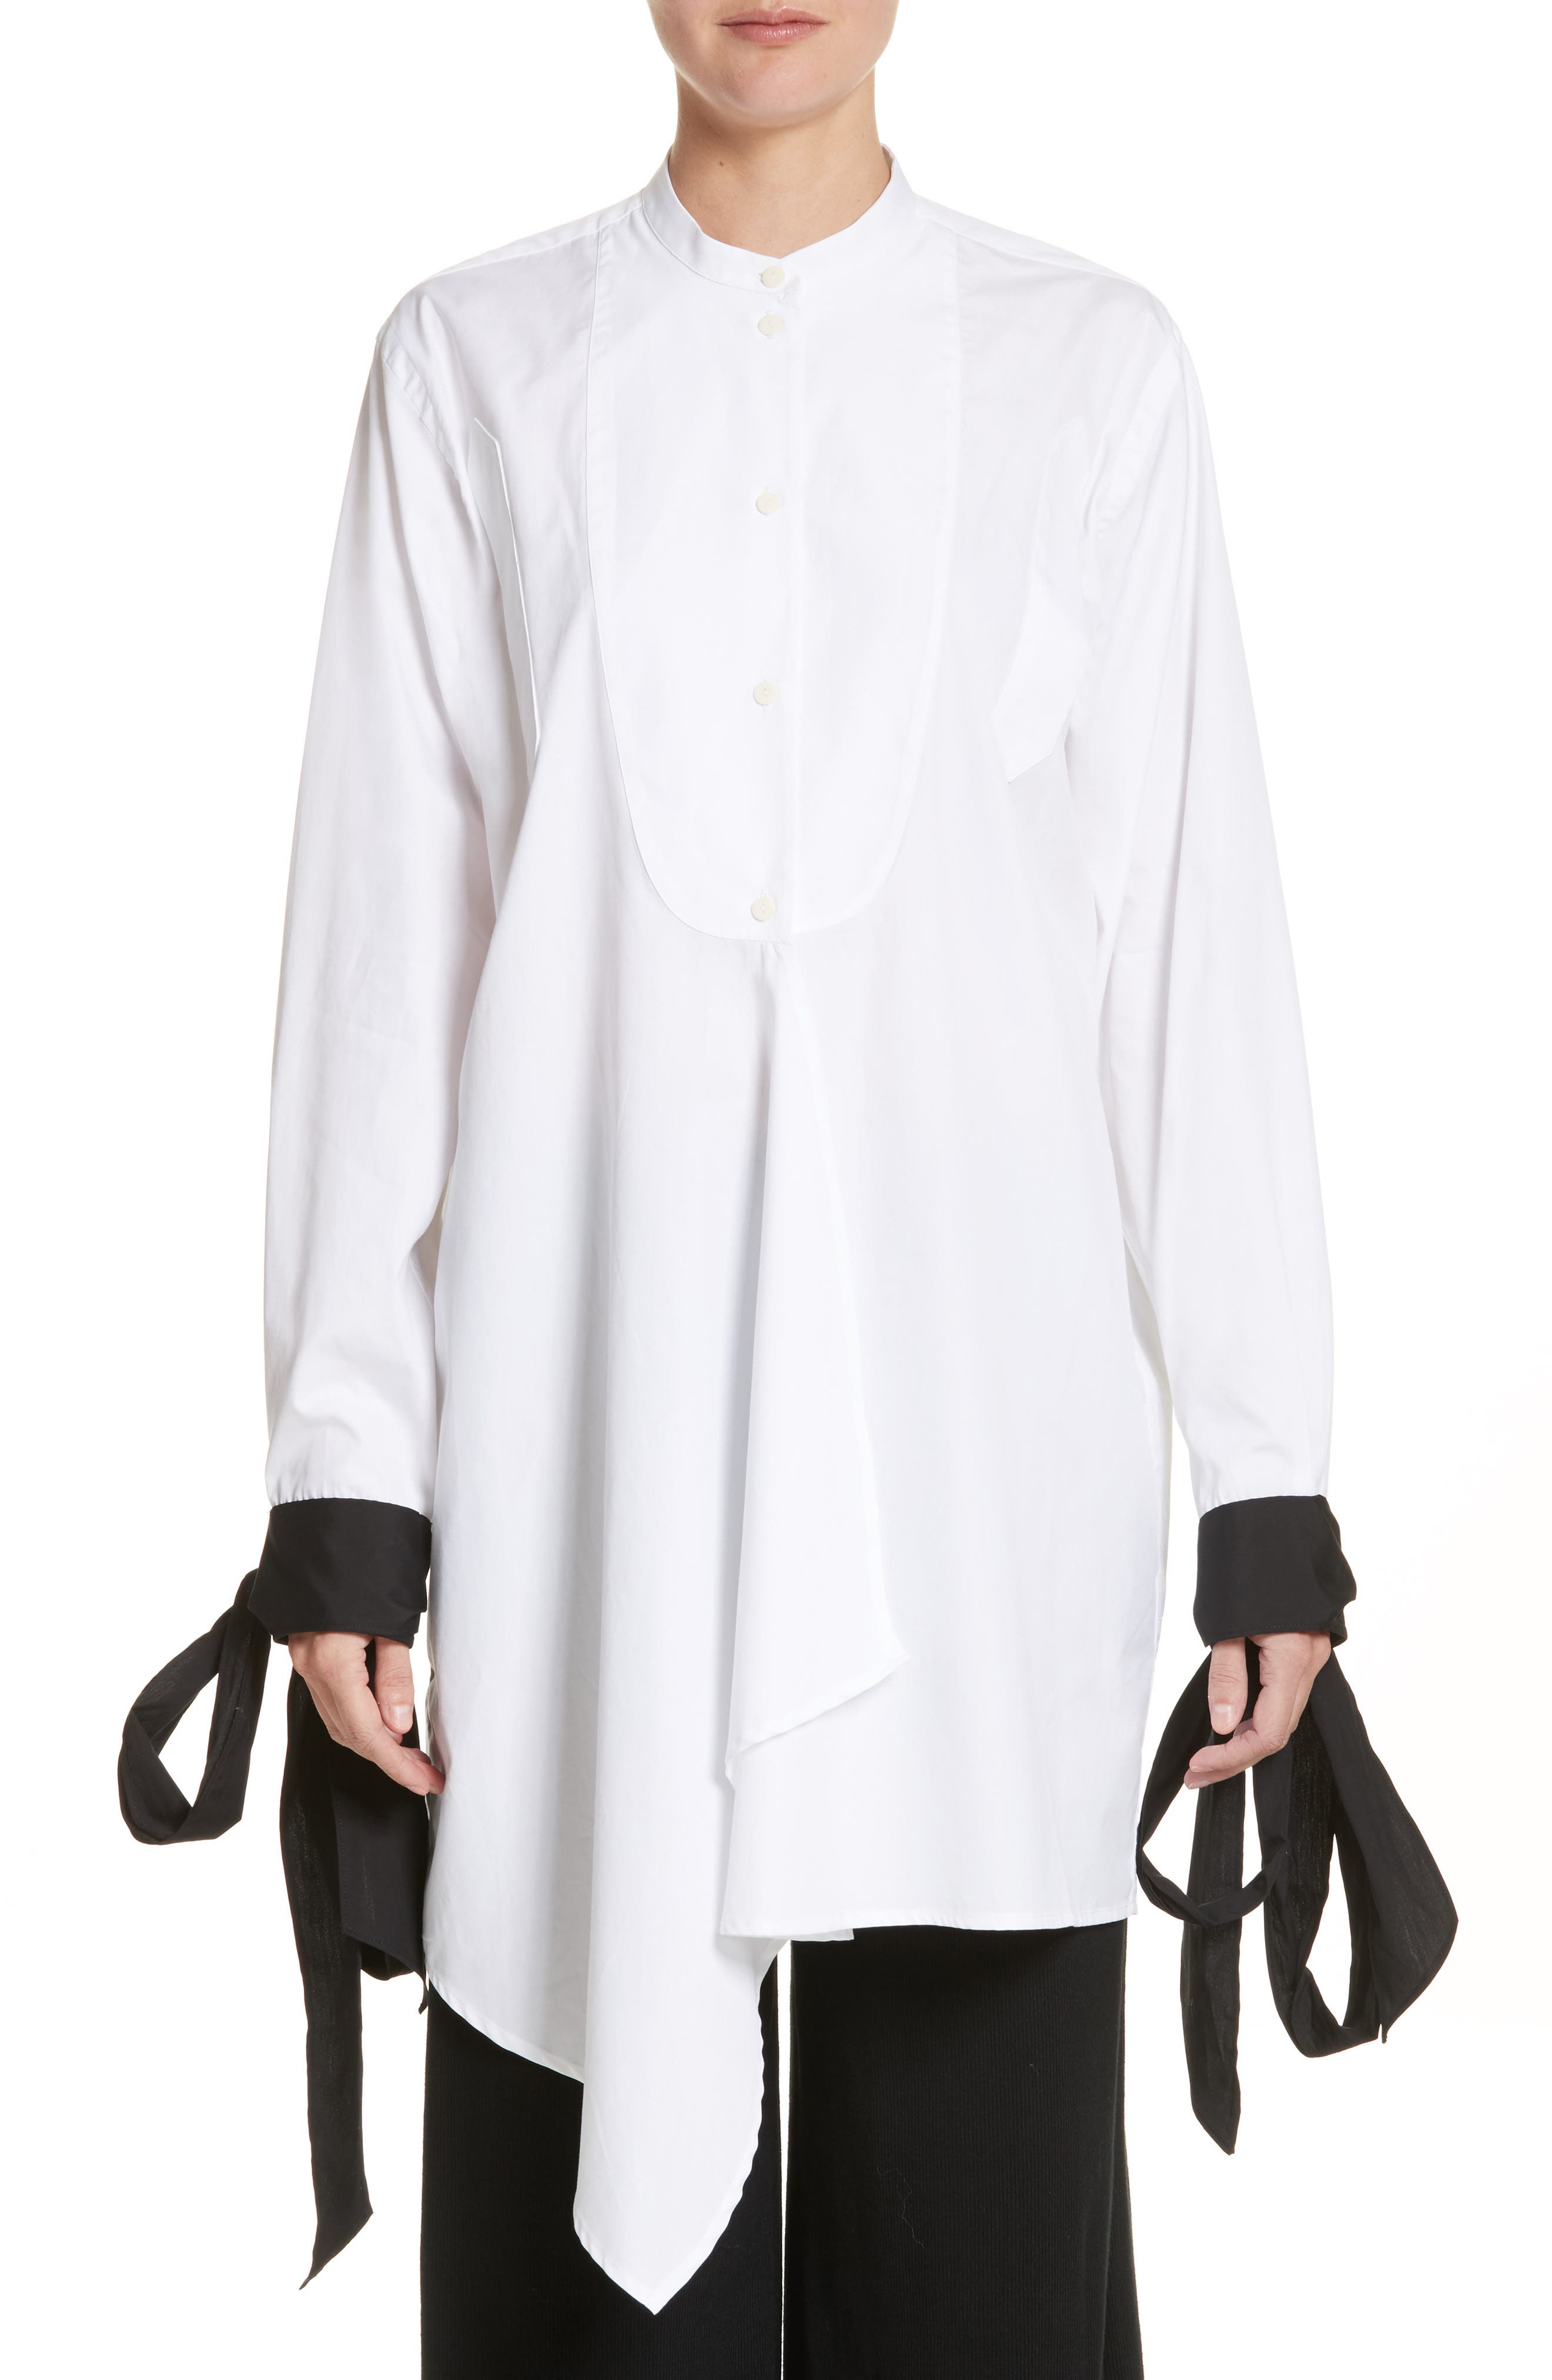 J.W.ANDERSON Bib Blouse with Contrast Tie Cuffs